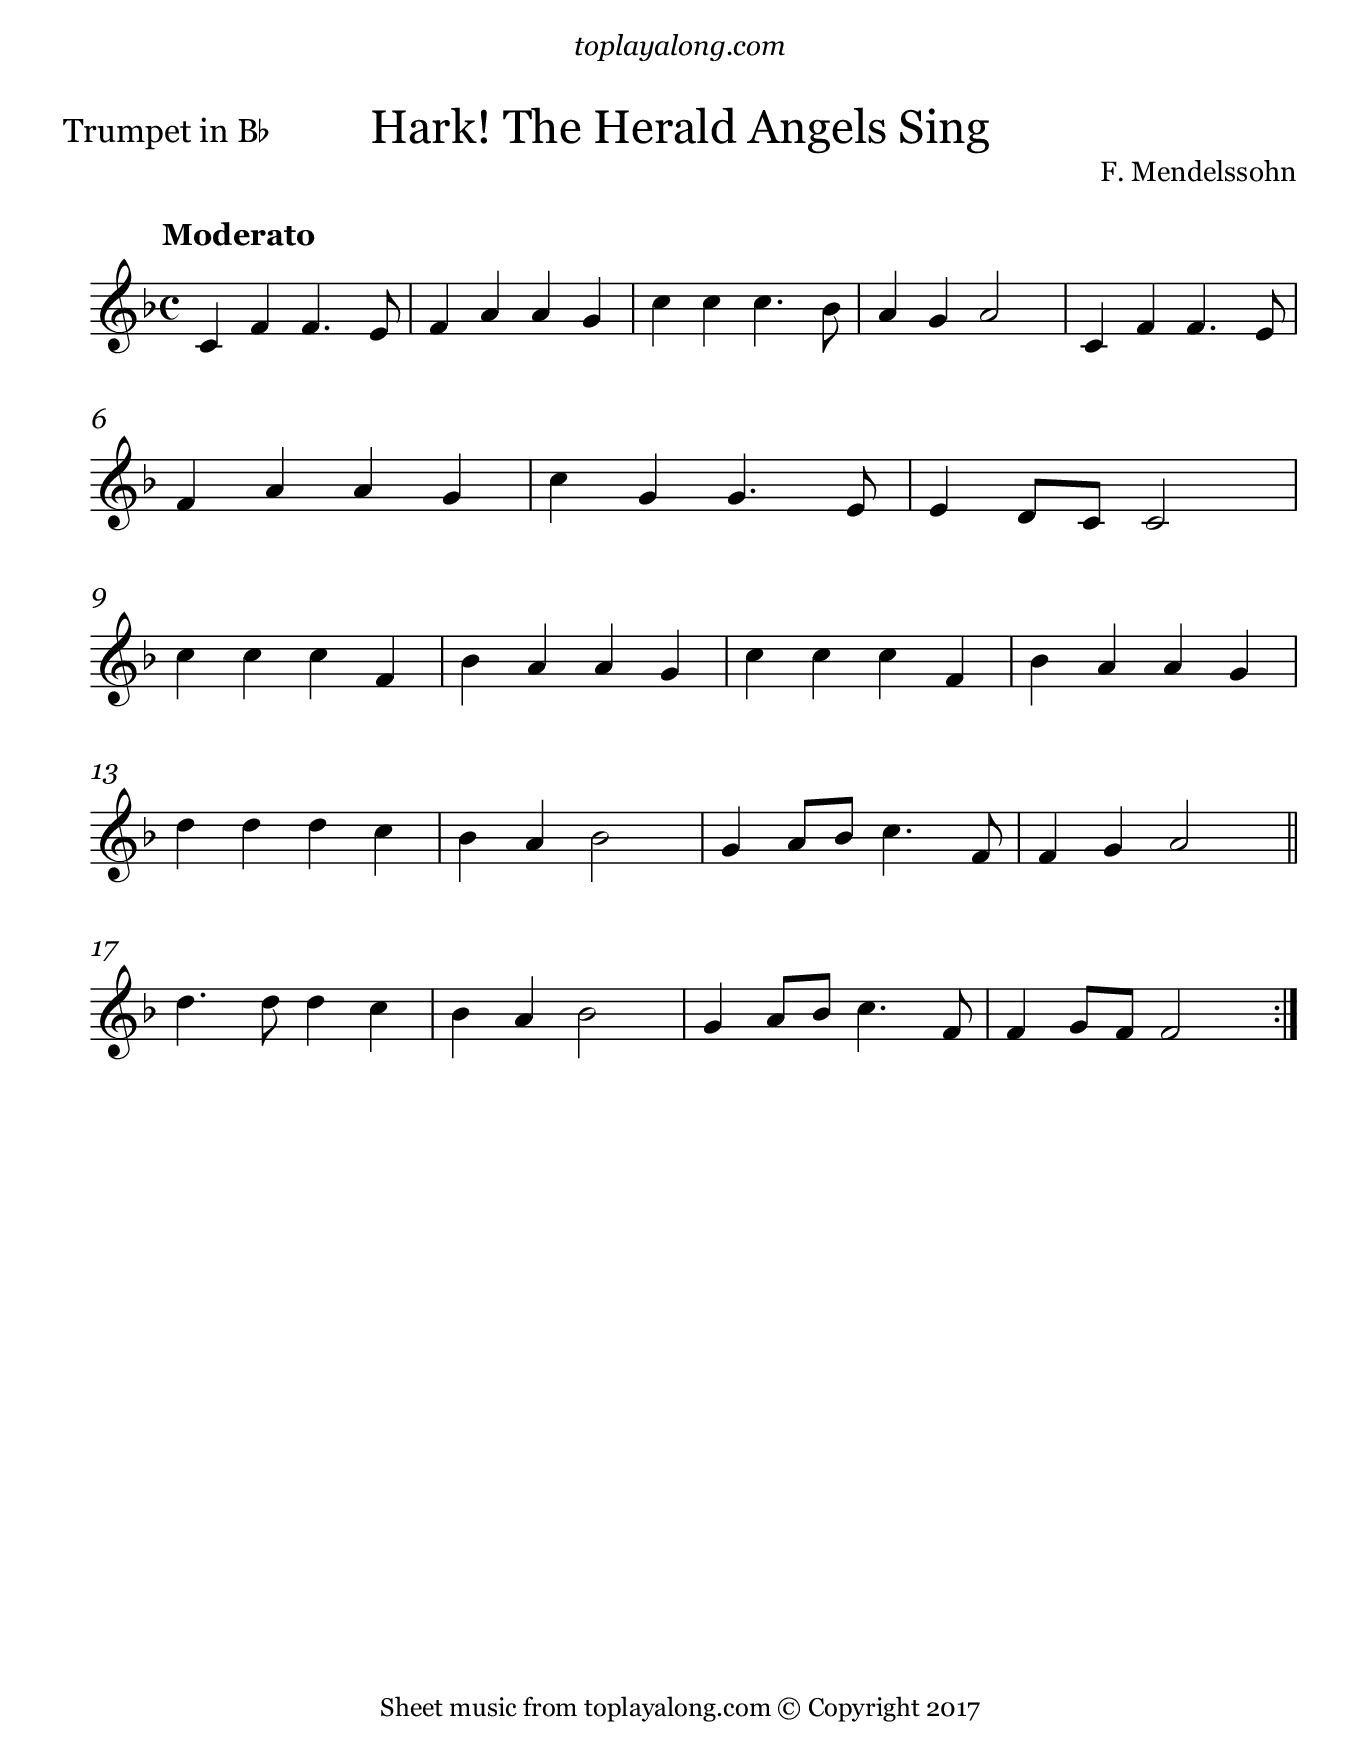 Hark! The Herald Angels Sing by Mendelssohn. Sheet music for Trumpet, page 1.